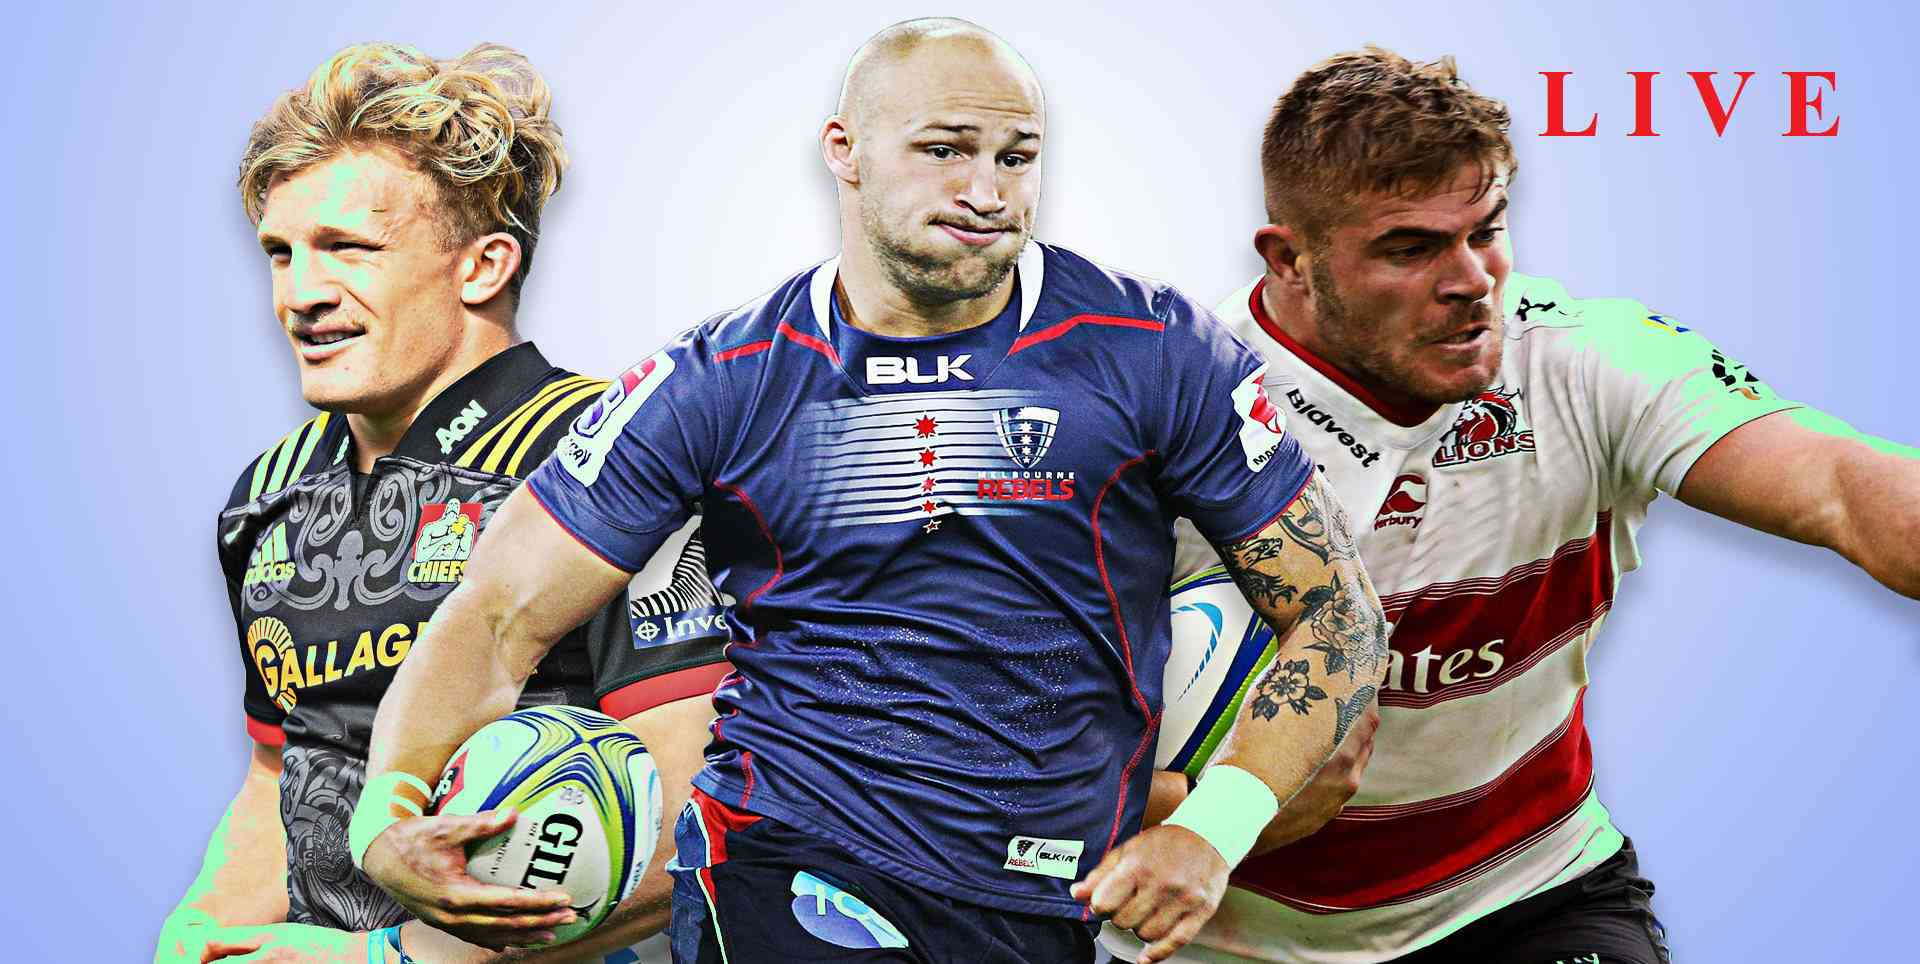 british-&-irish-lions-vs-highlanders-rugby-live